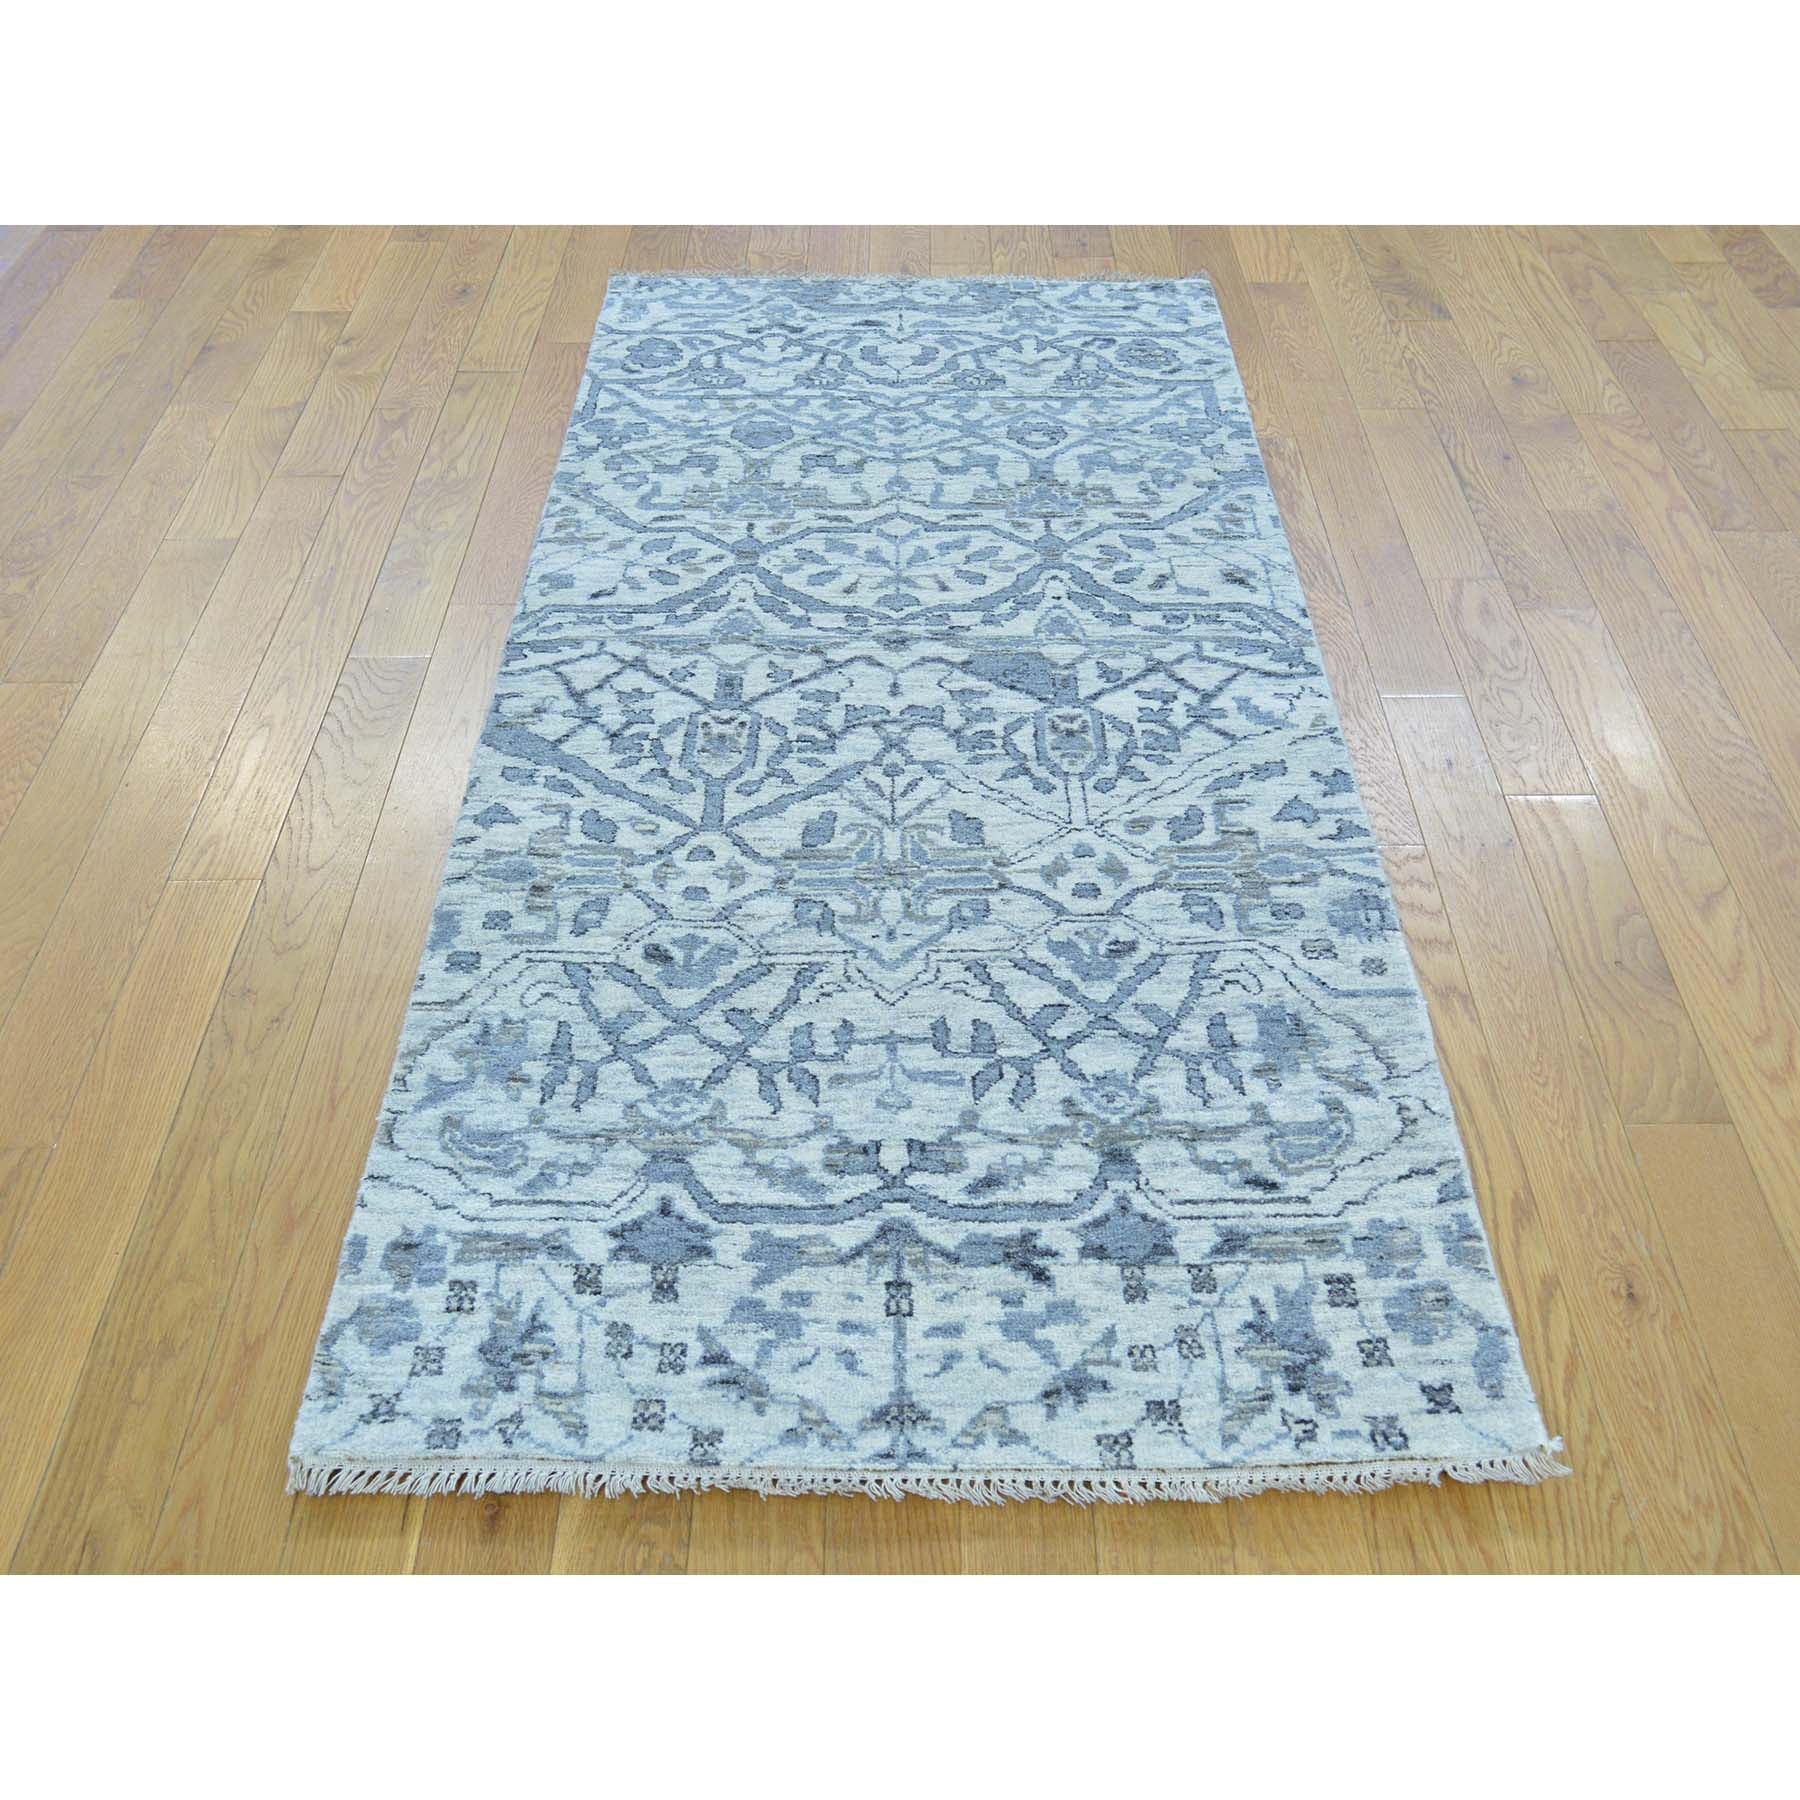 "Handmade Oushak And Peshawar Runner Rug > Design# SH29519 > Size: 2'-7"" x 6'-0"" [ONLINE ONLY]"